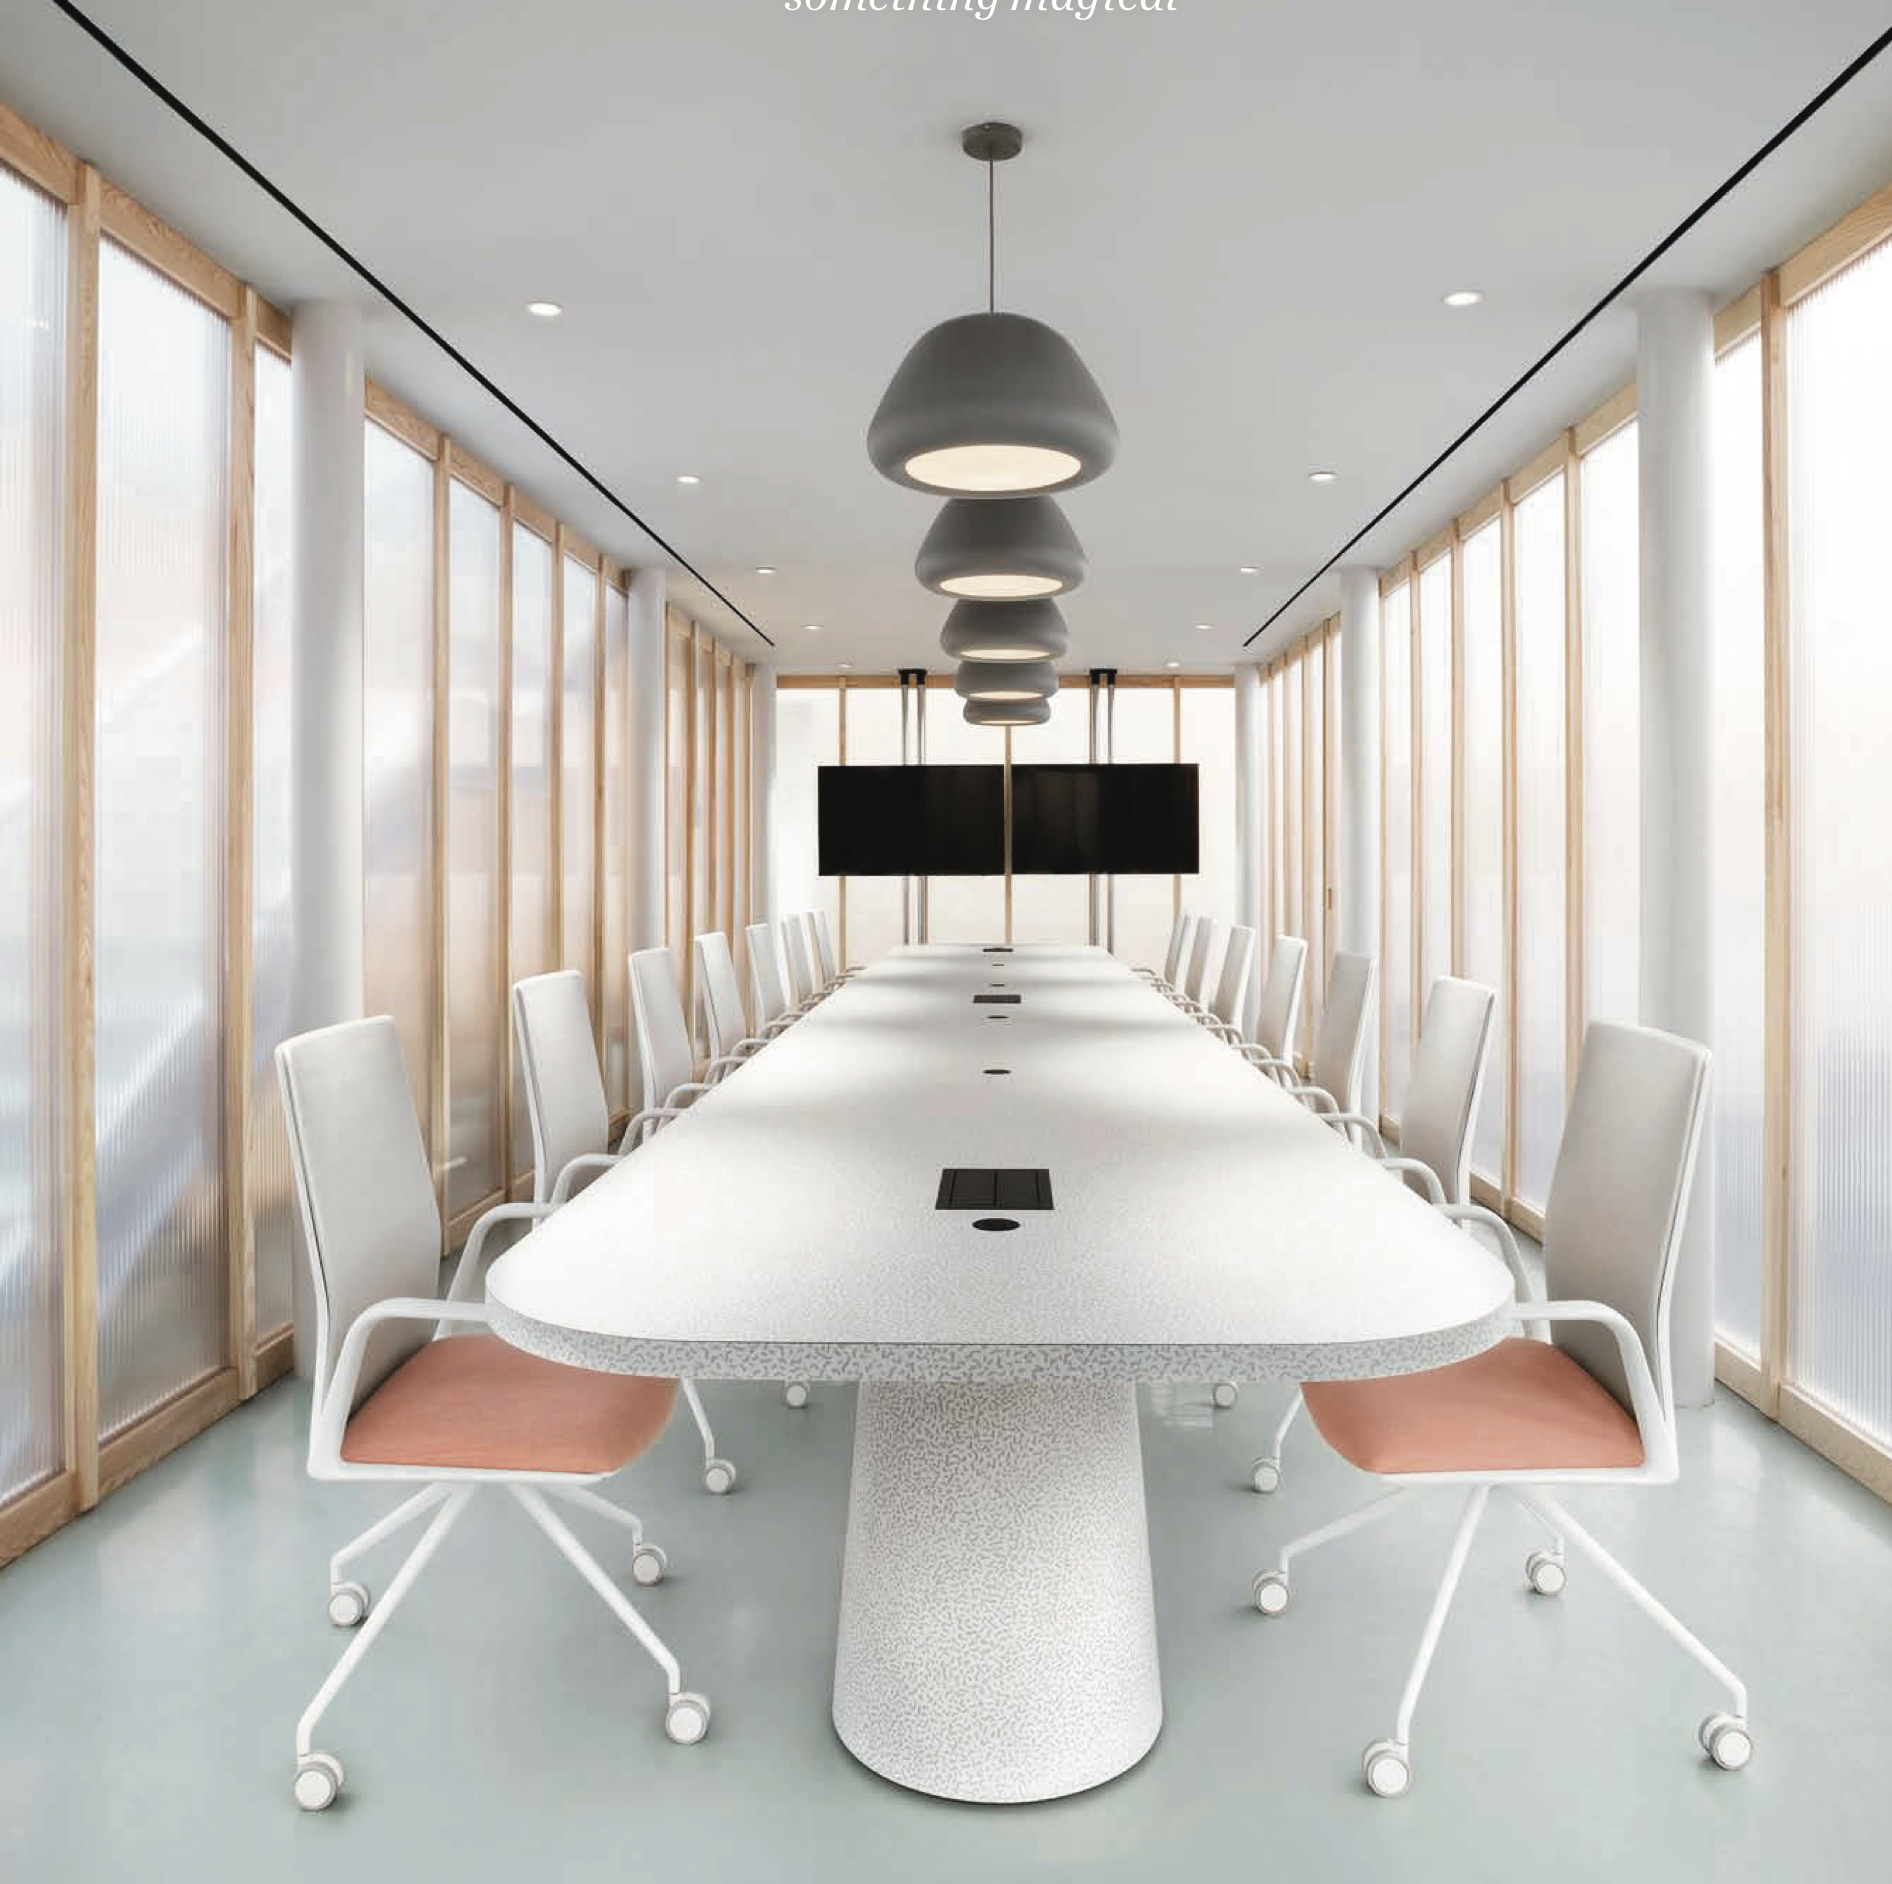 Campari Headquaters by I-V SETS with Arper's Kinesit chairs